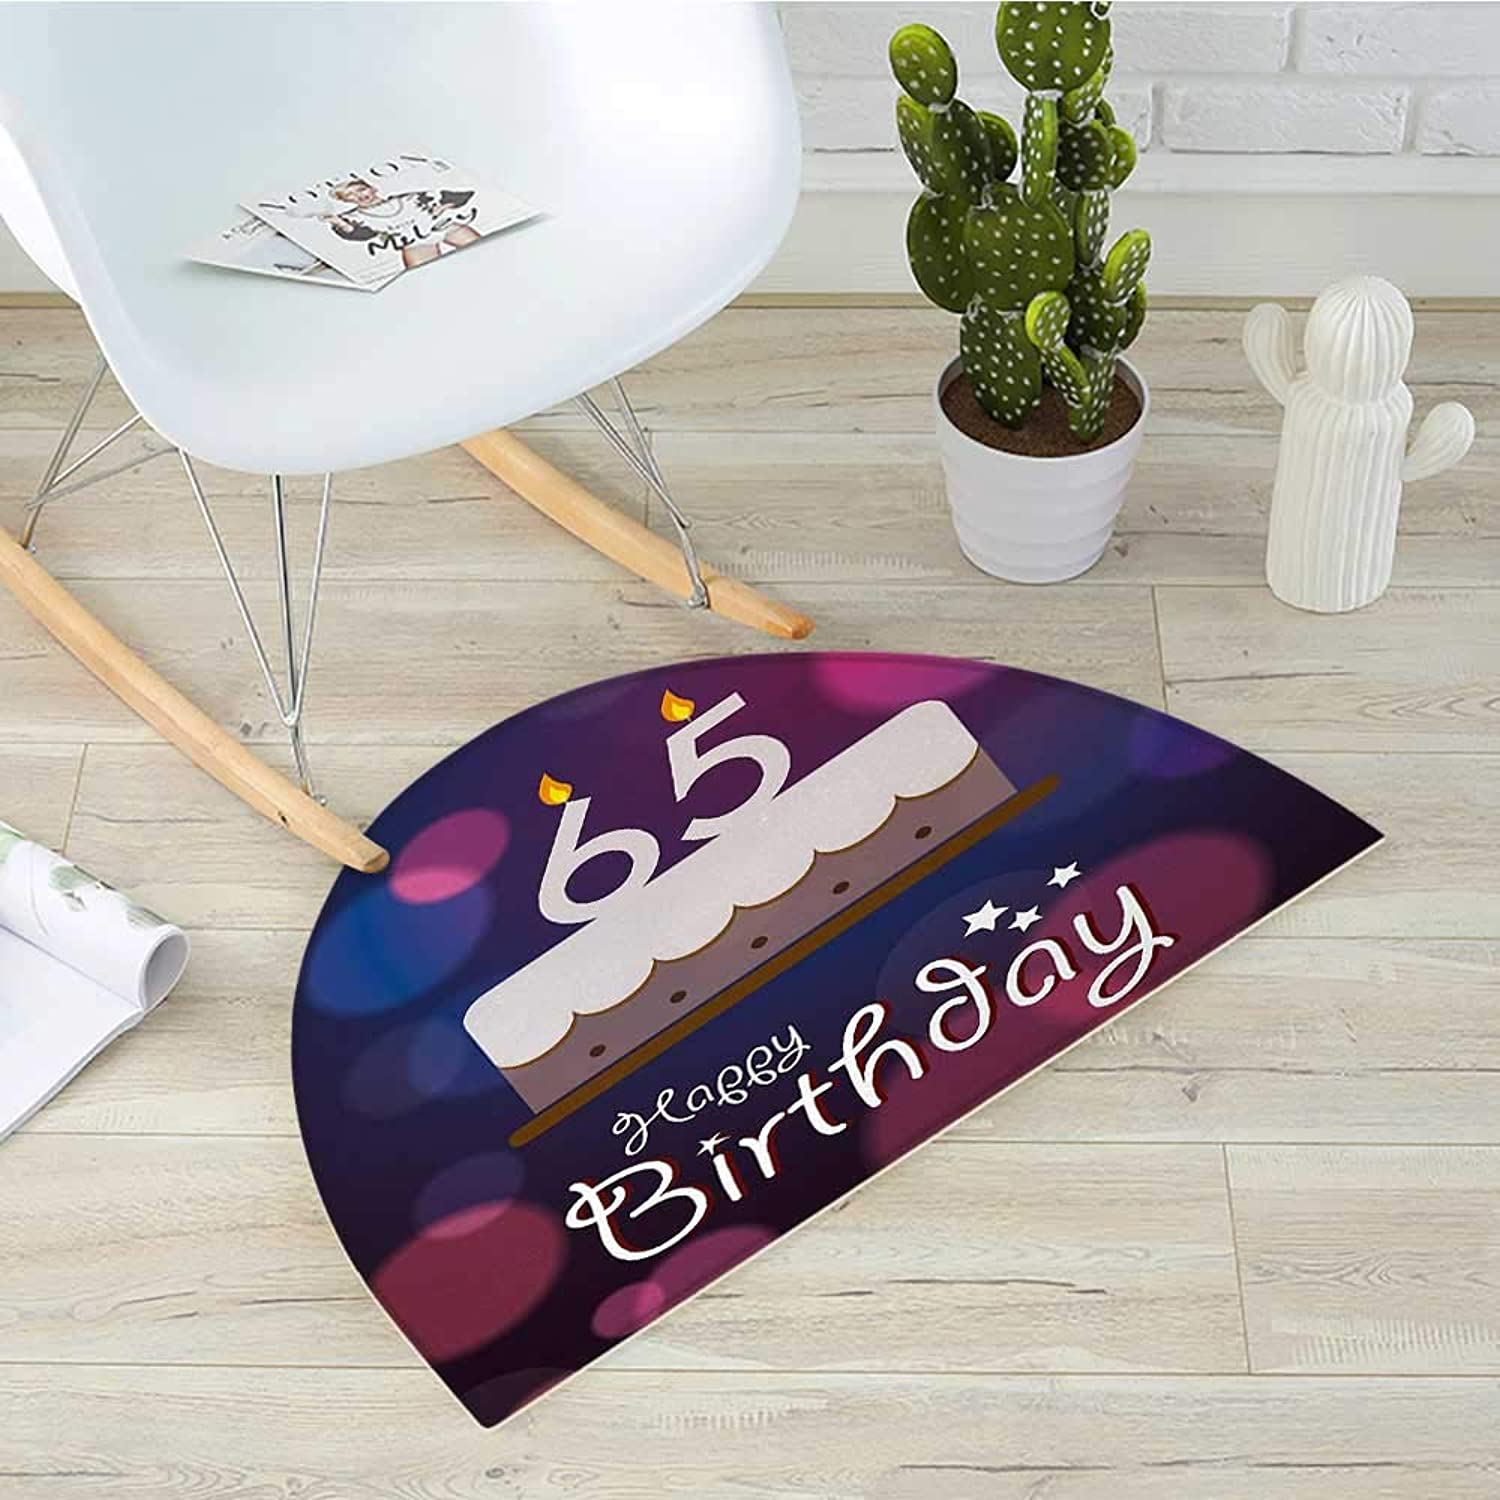 65th Birthday Semicircular CushionBirthday Ceremony Artwork with Cake Hand Writing Calligraphy Best Wishes Entry Door Mat H 35.4  xD 53.1  bluee Pink White